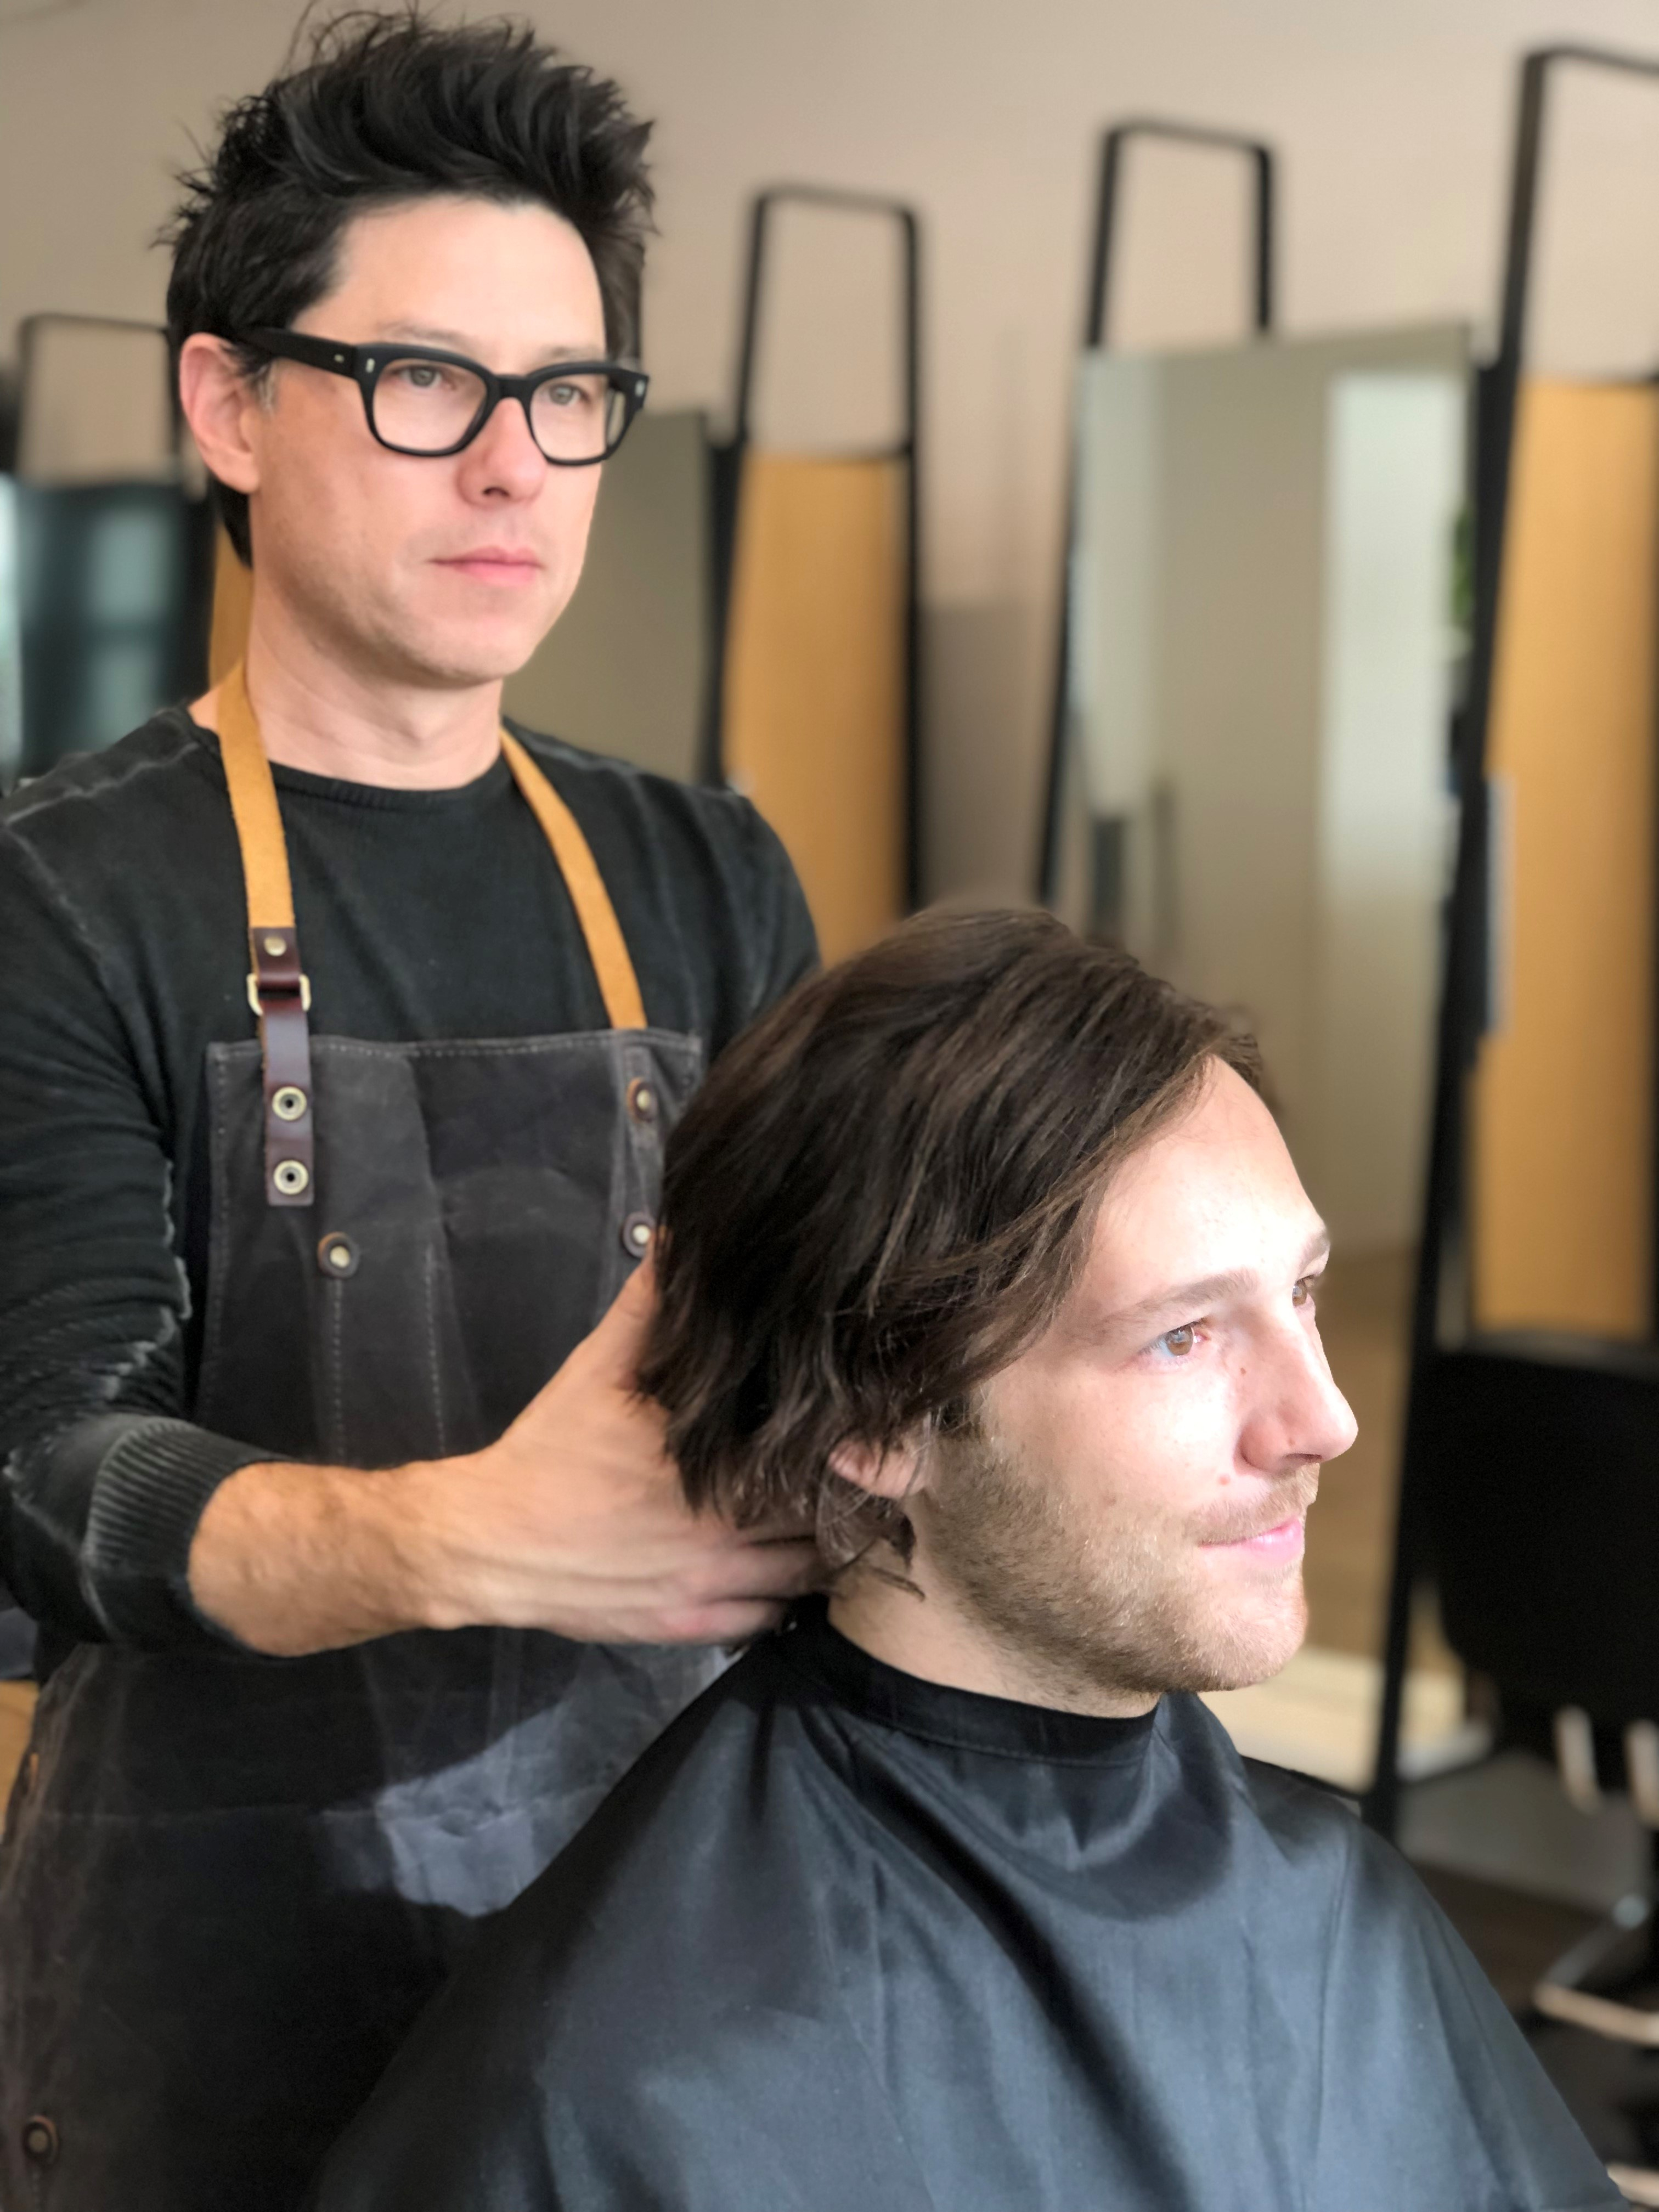 American Crew's Global Artistic Director, Paul Wilson, celebrates the brand's milestone birthday by reflecting on the past, present and future of men's grooming. Jamie Newman